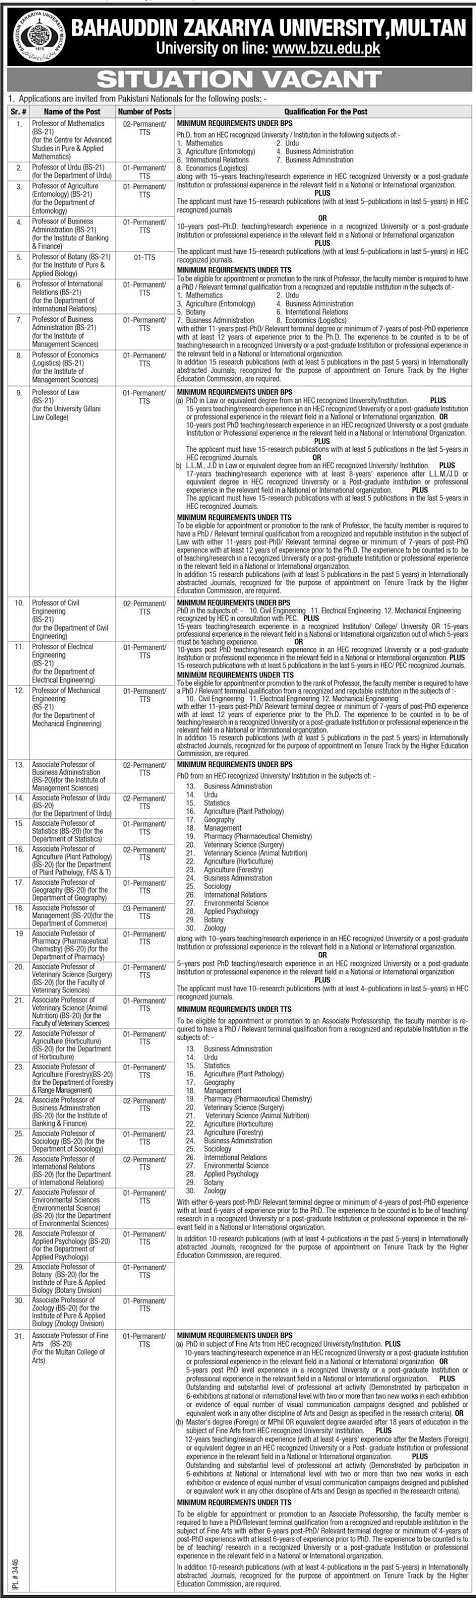 Bahauddin Zakariya University Multan Jobs1